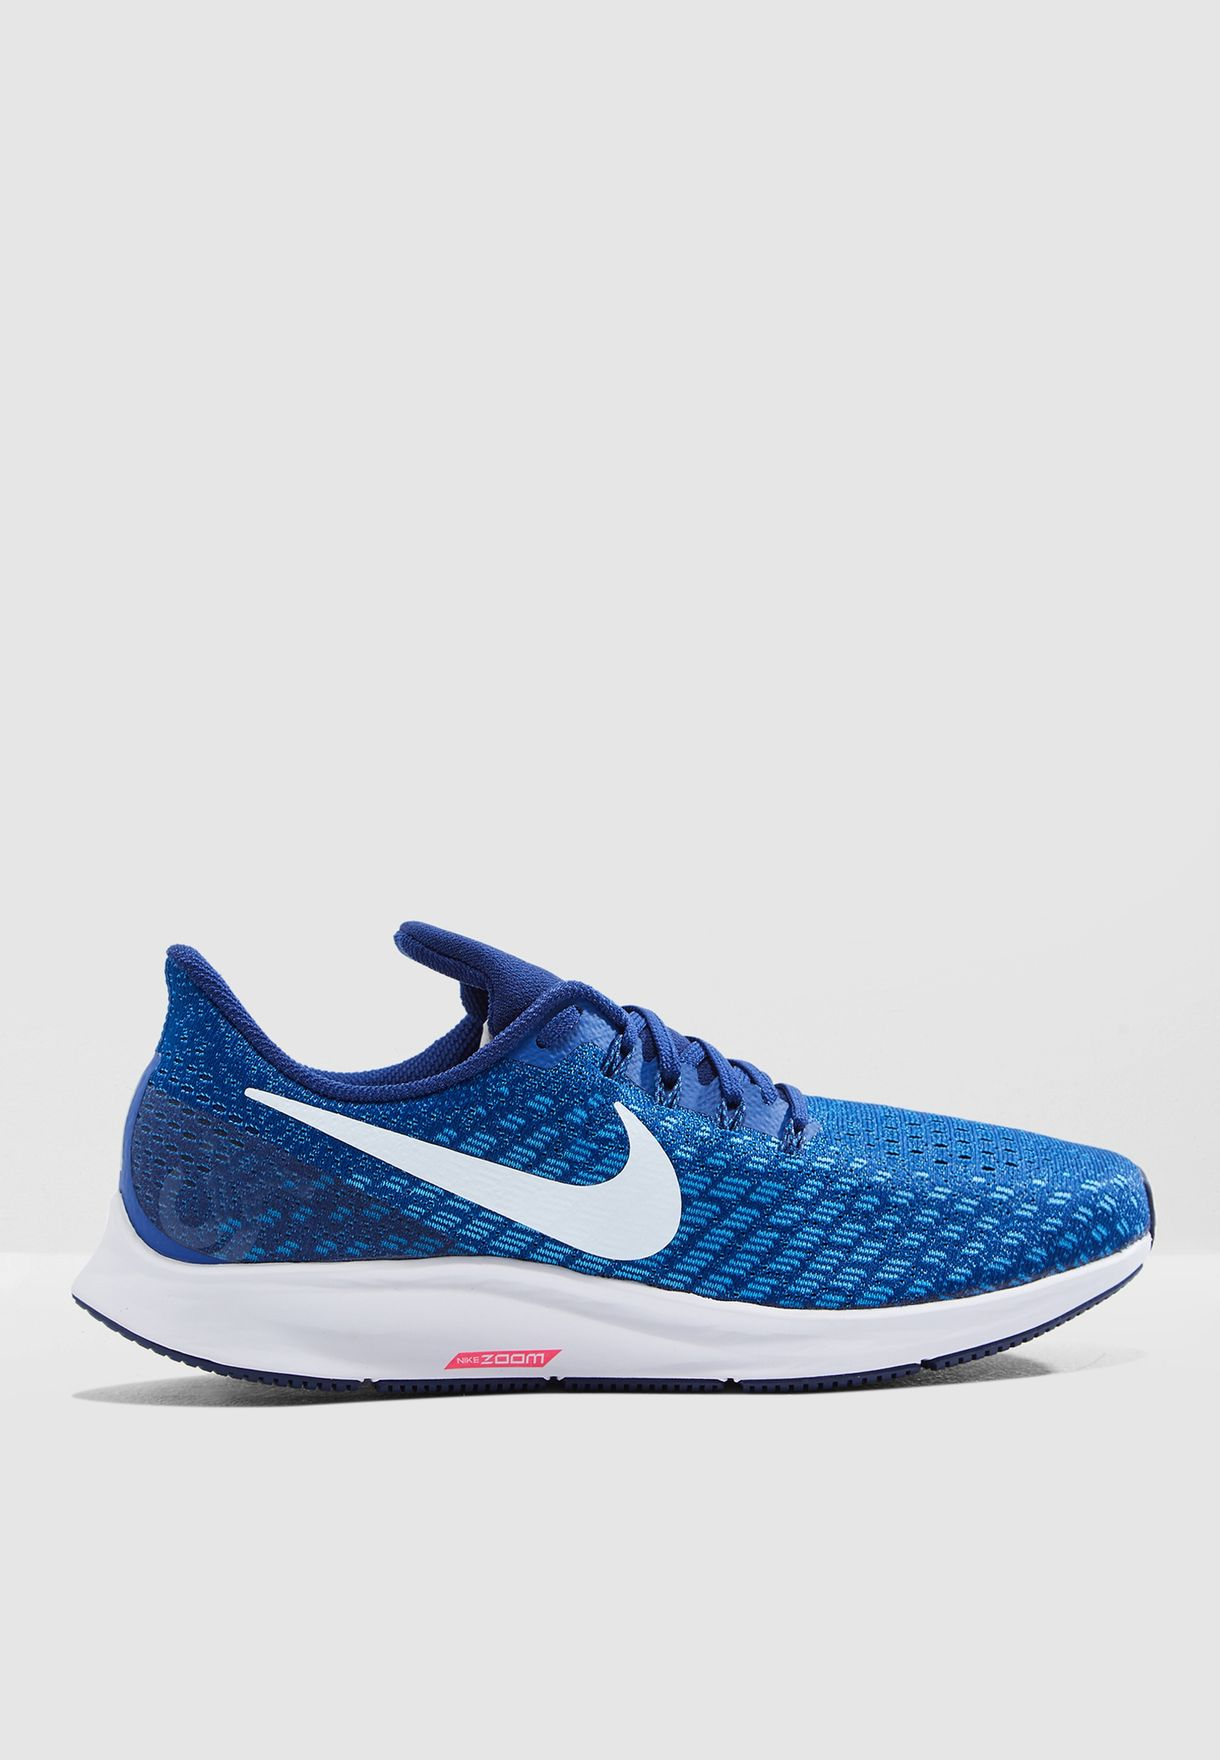 086bf30b416 Shop Nike blue Air Zoom Pegasus 35 942851-404 for Men in UAE ...